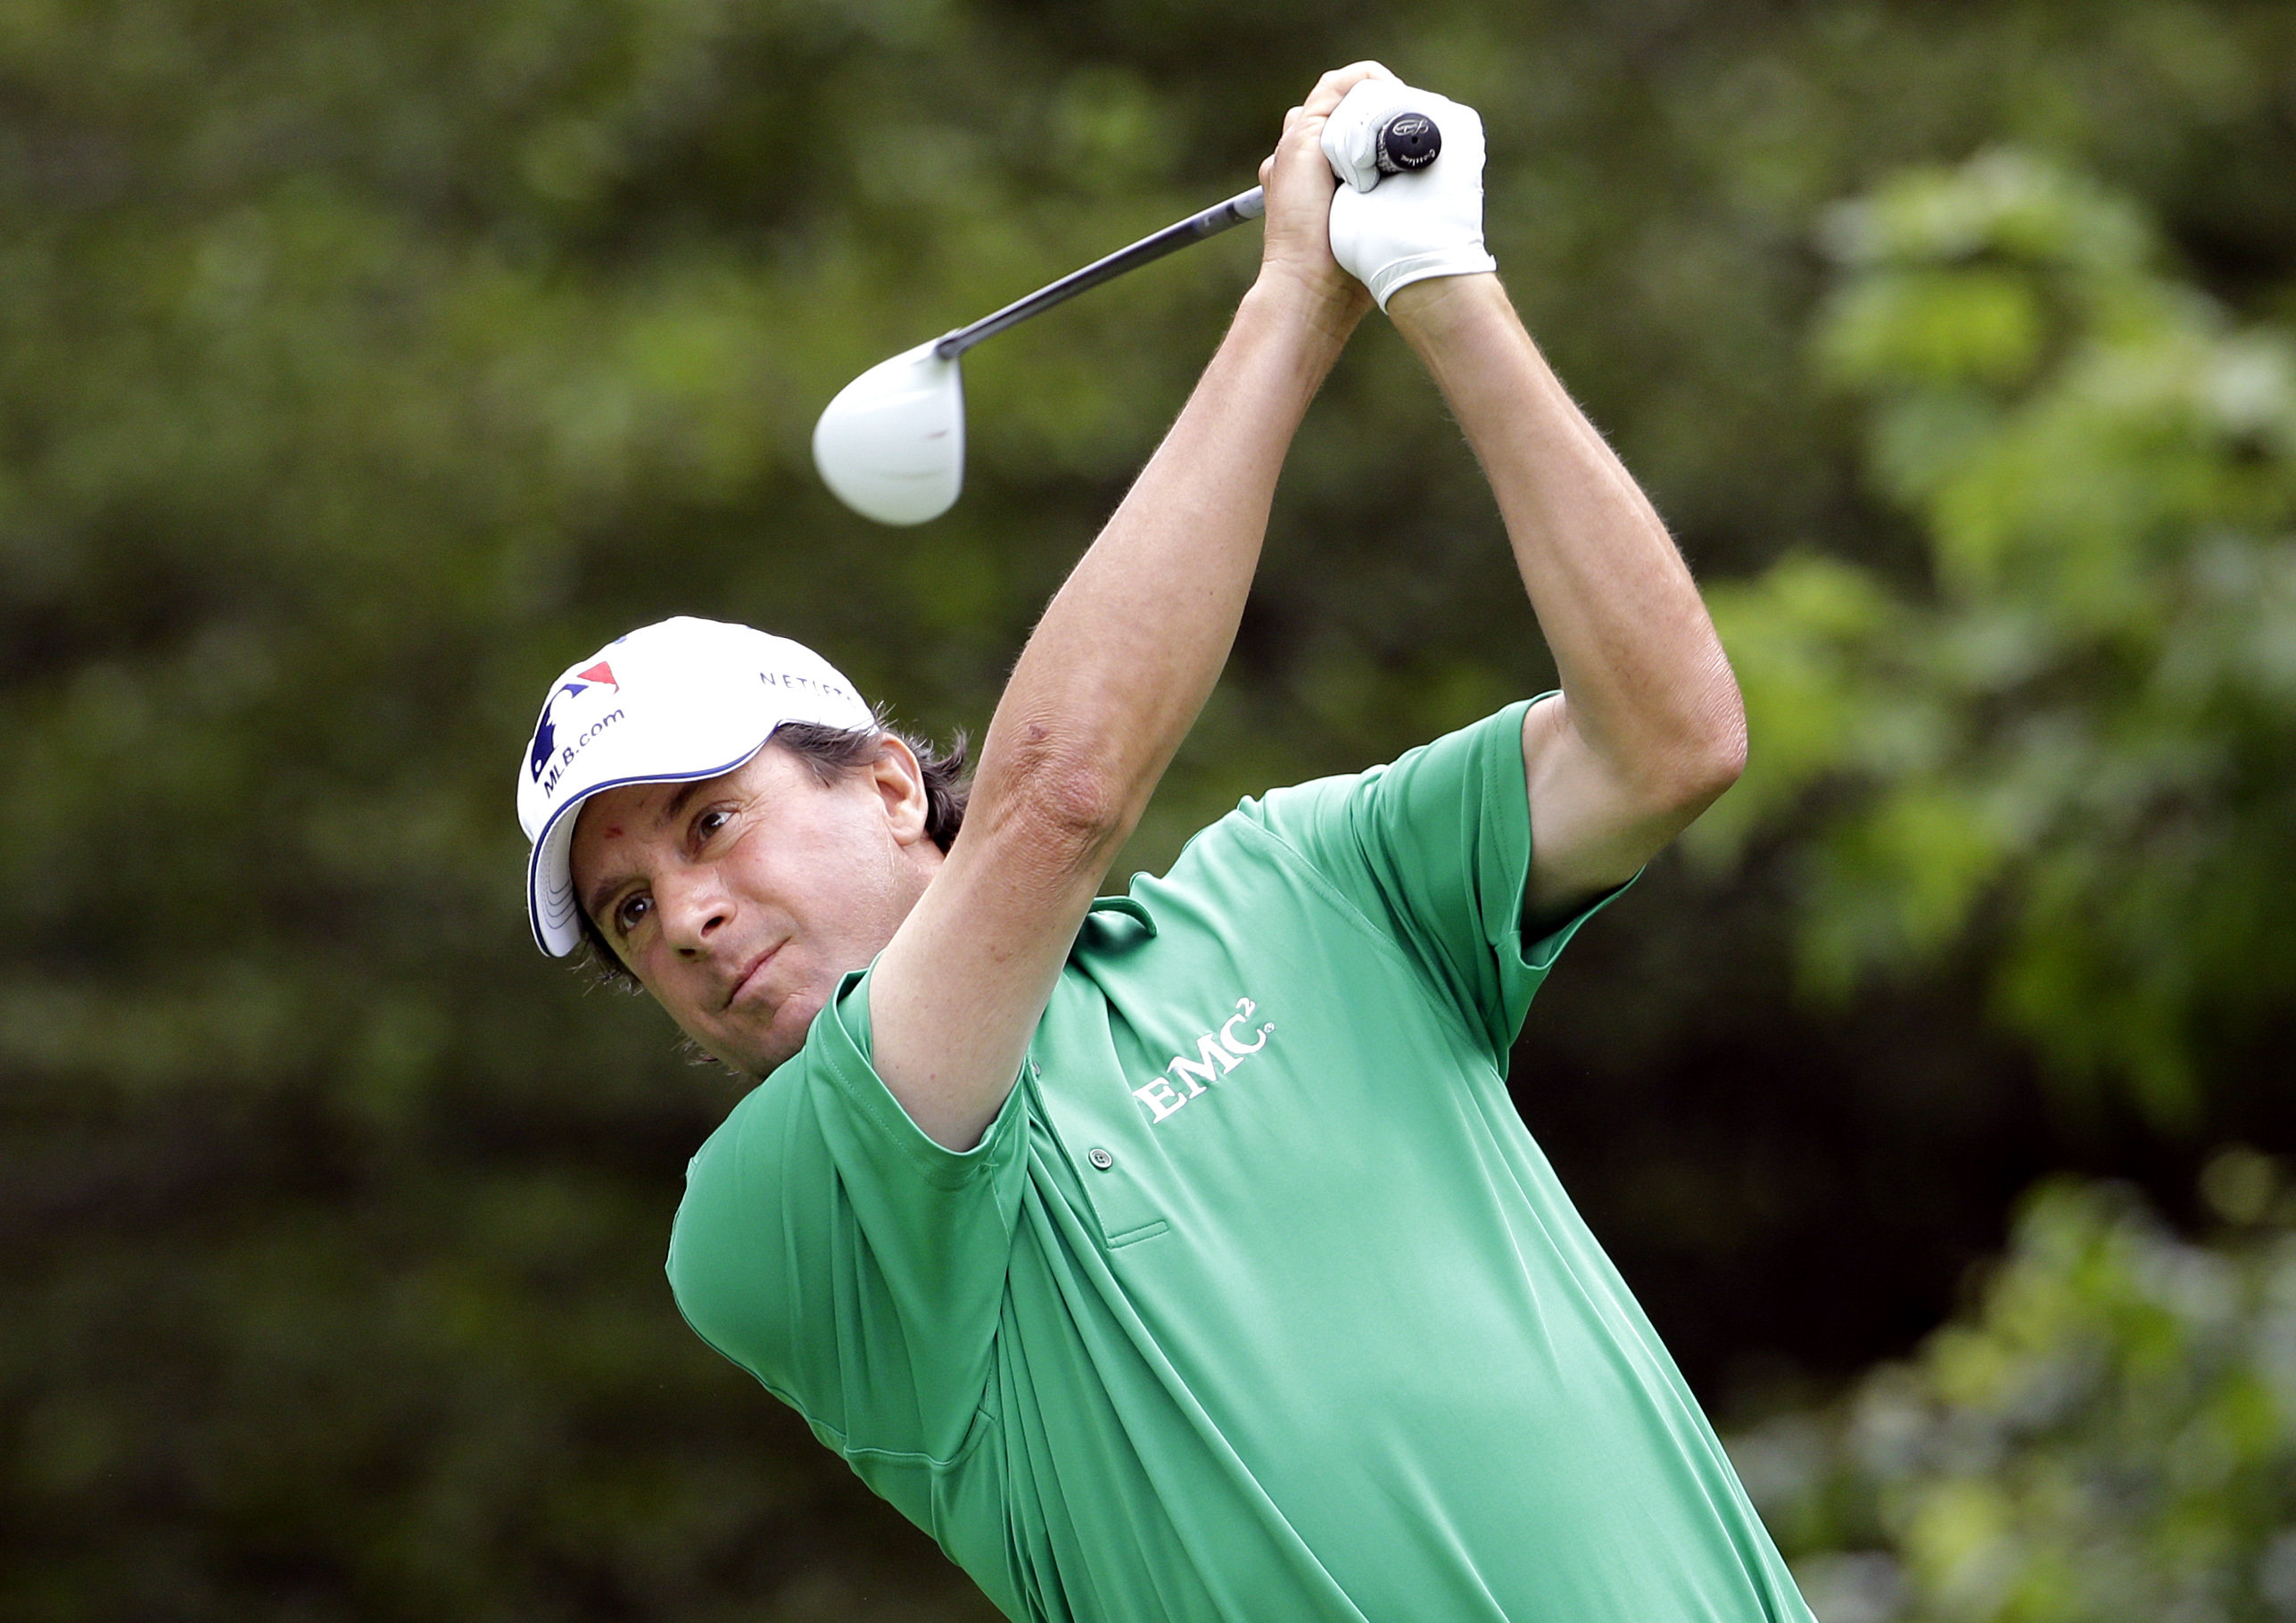 Billy Andrade follows through on a tee shot on the 17th during the pro-am for the Champions Tour's Encompass Championship golf tournament Thursday, July 9, 2015, in Glenview, Ill. (AP Photo/Nam Y. Huh)